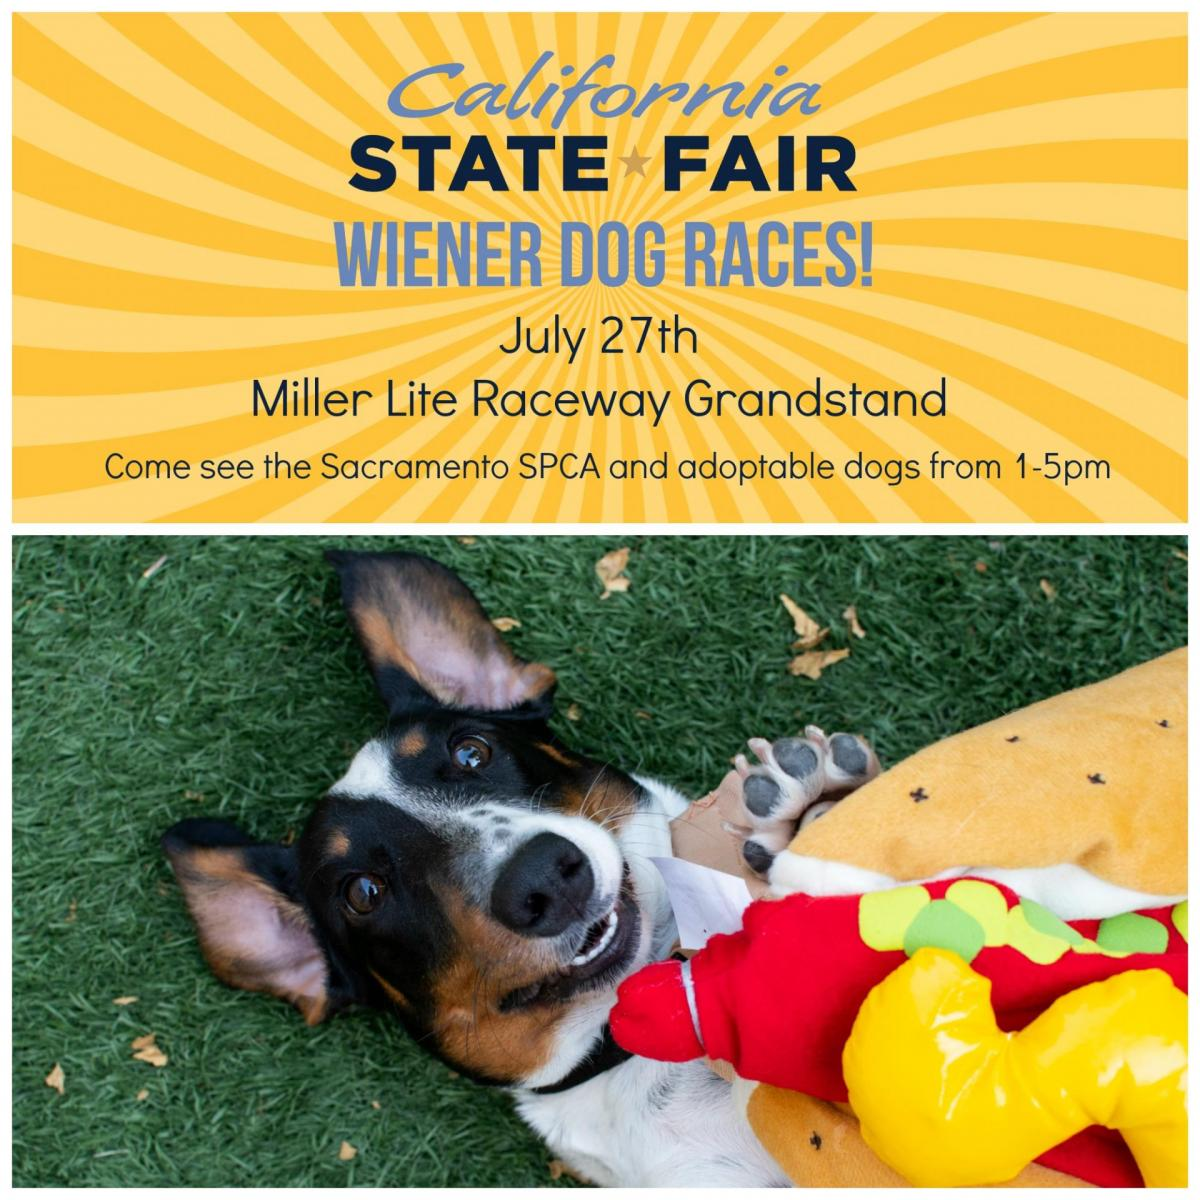 California State Fair Wiener Dog Races - Sacramento SPCA